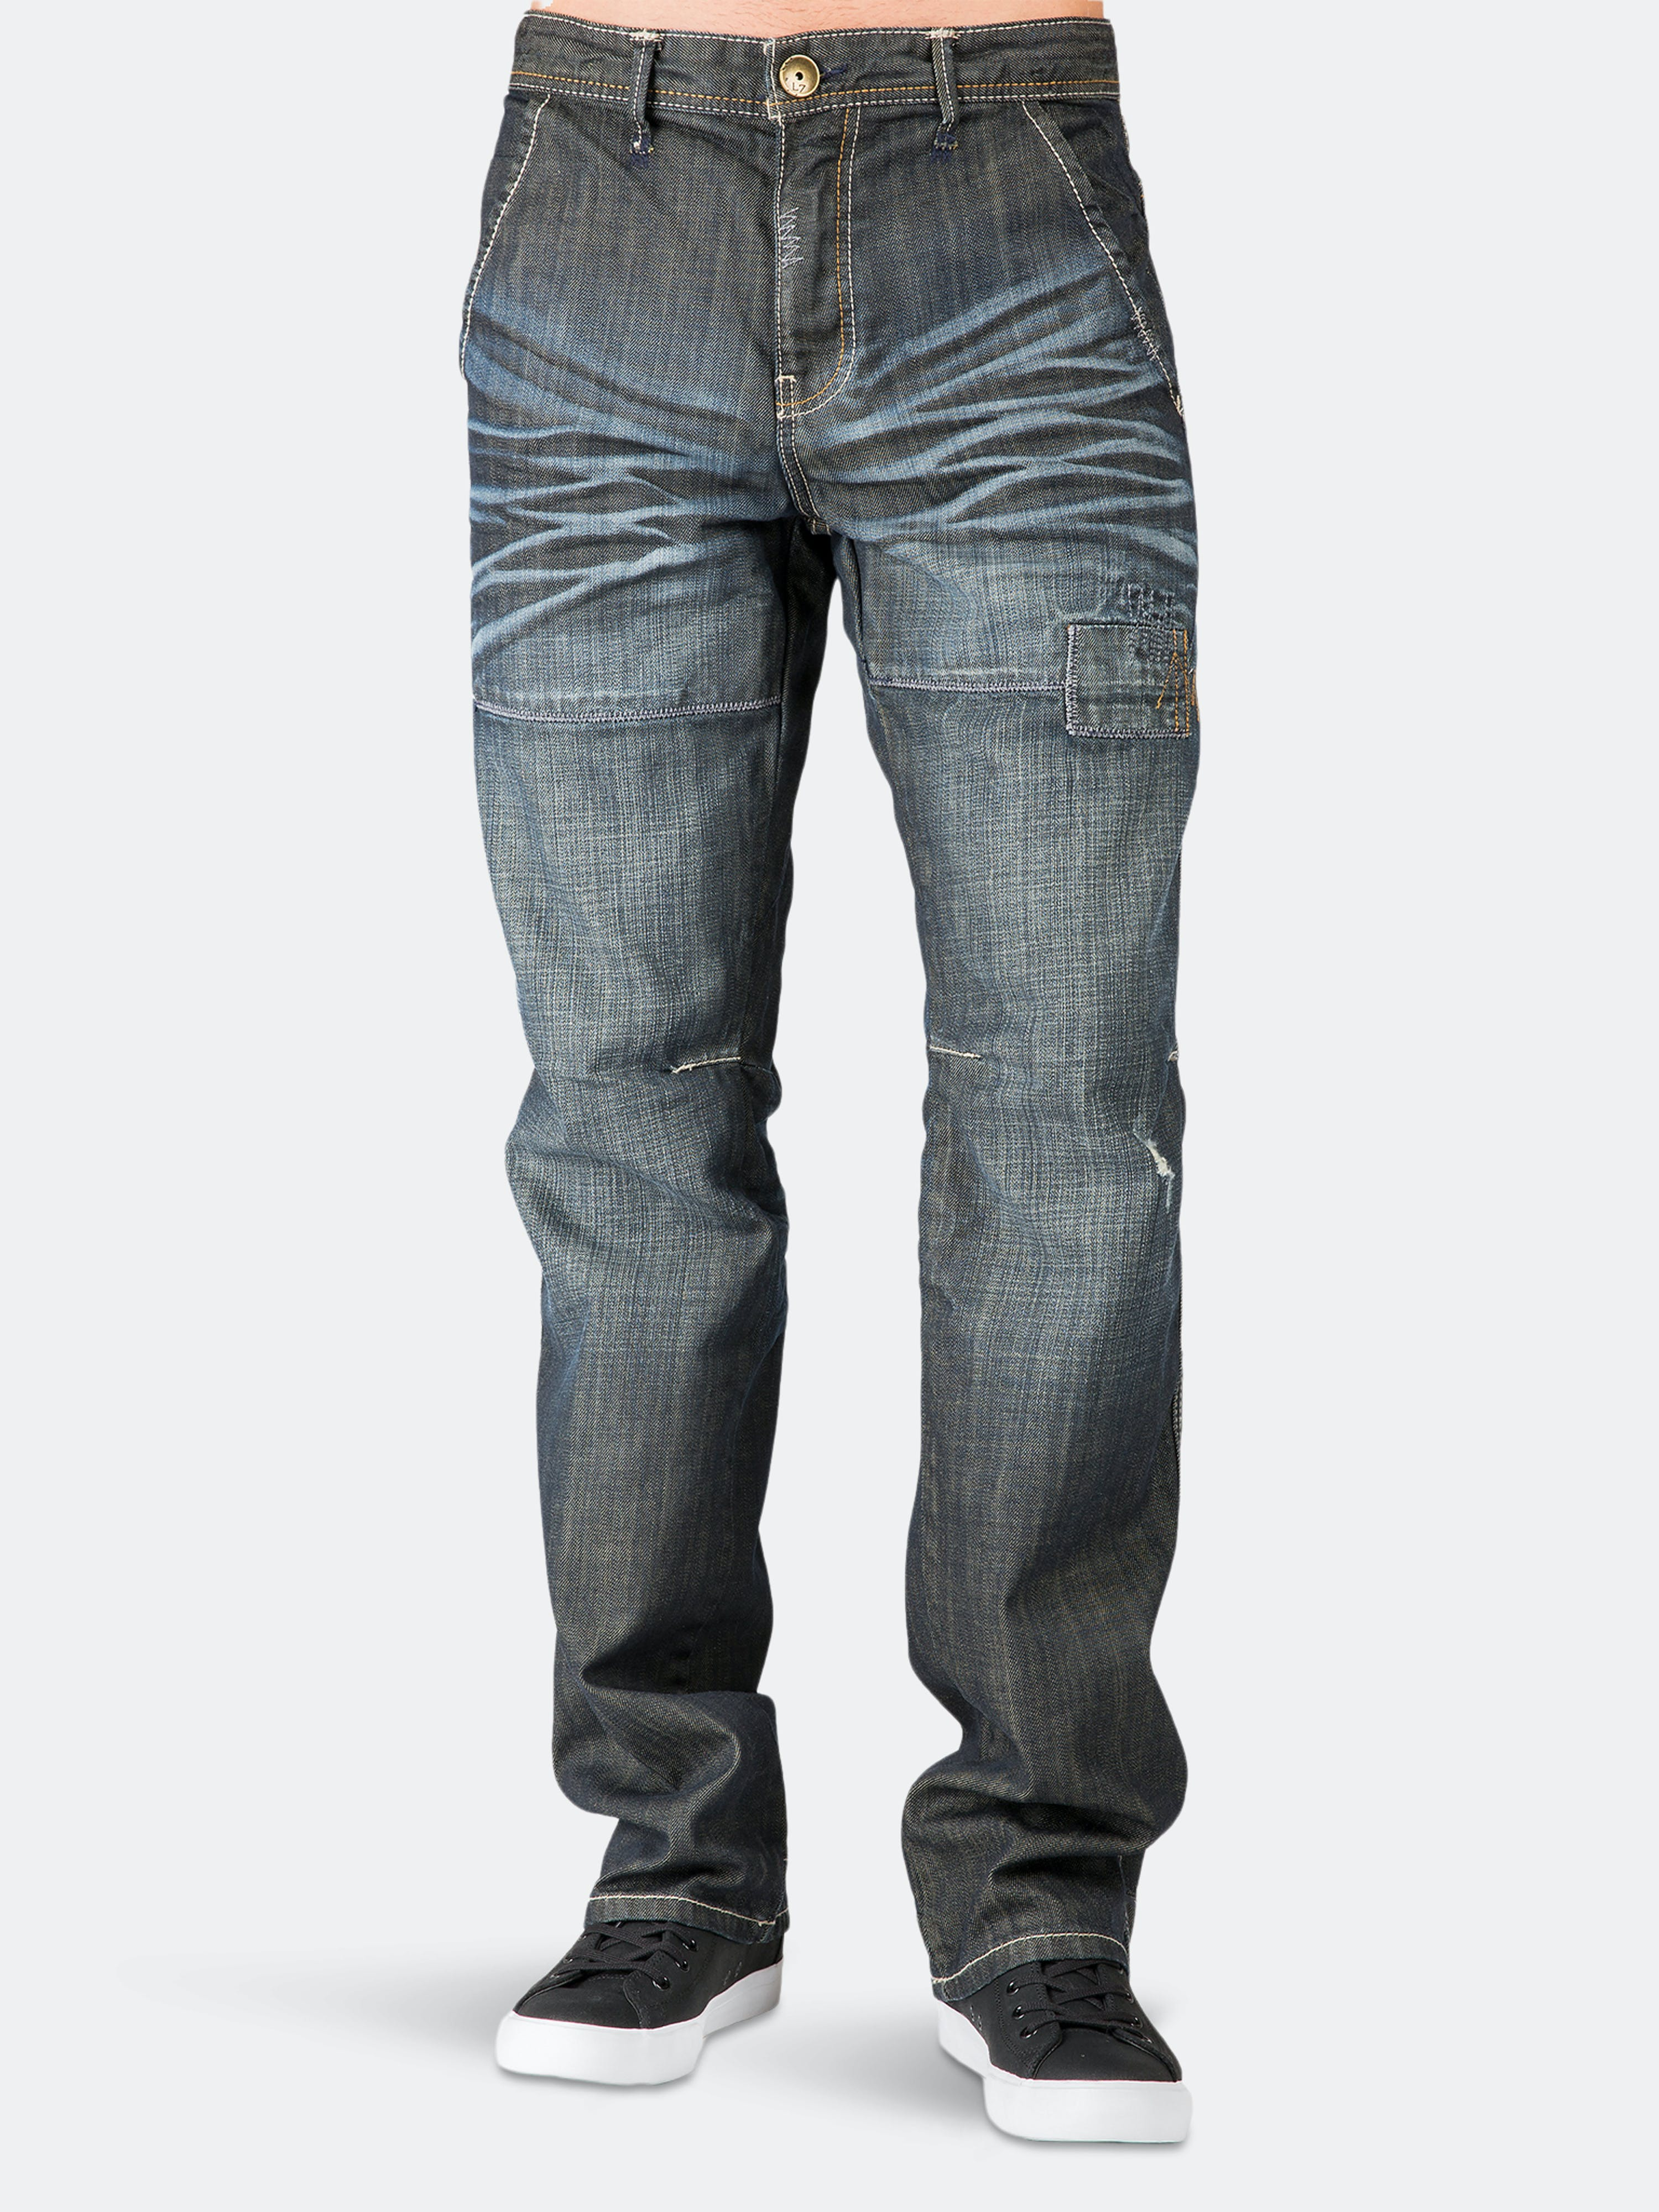 Level 7 Relaxed Straight Premium Jeans Dark Stone Wash Ripped & Repaired In Blue